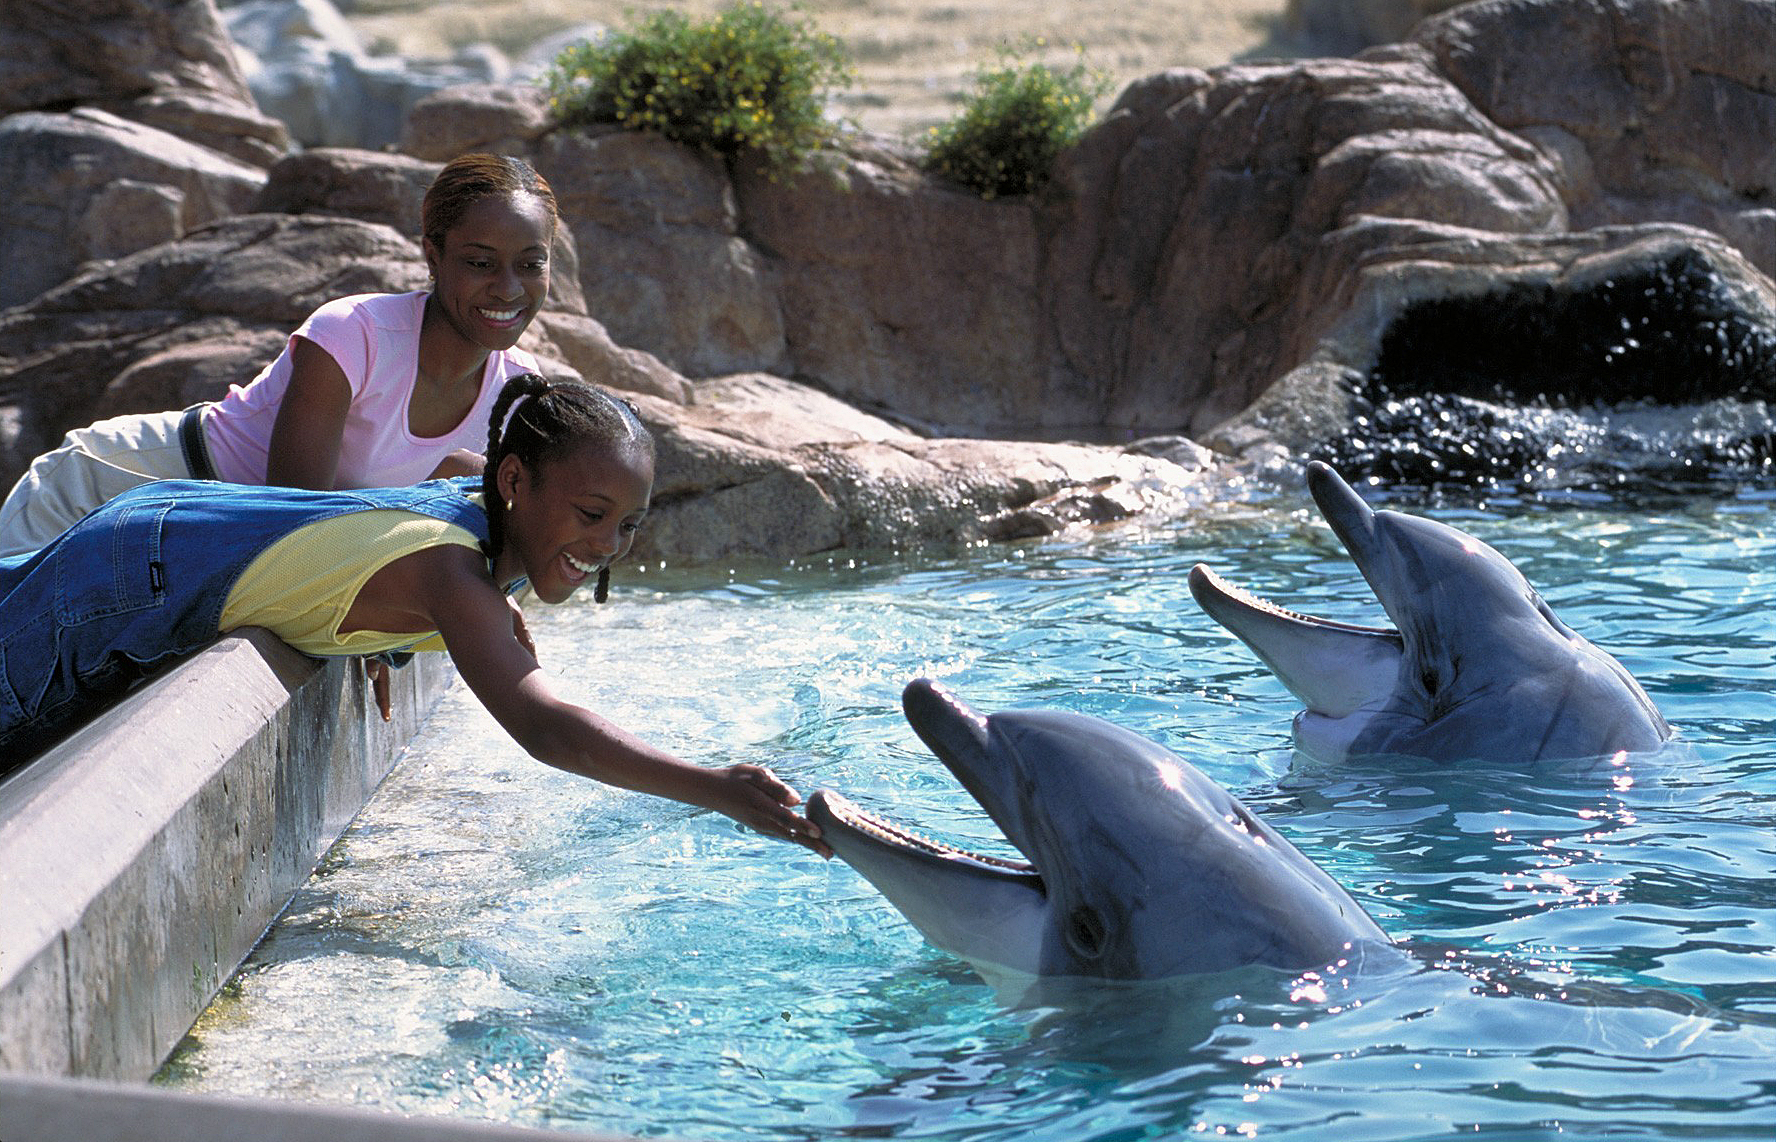 The Ultimate Family Getaway With Free Deals